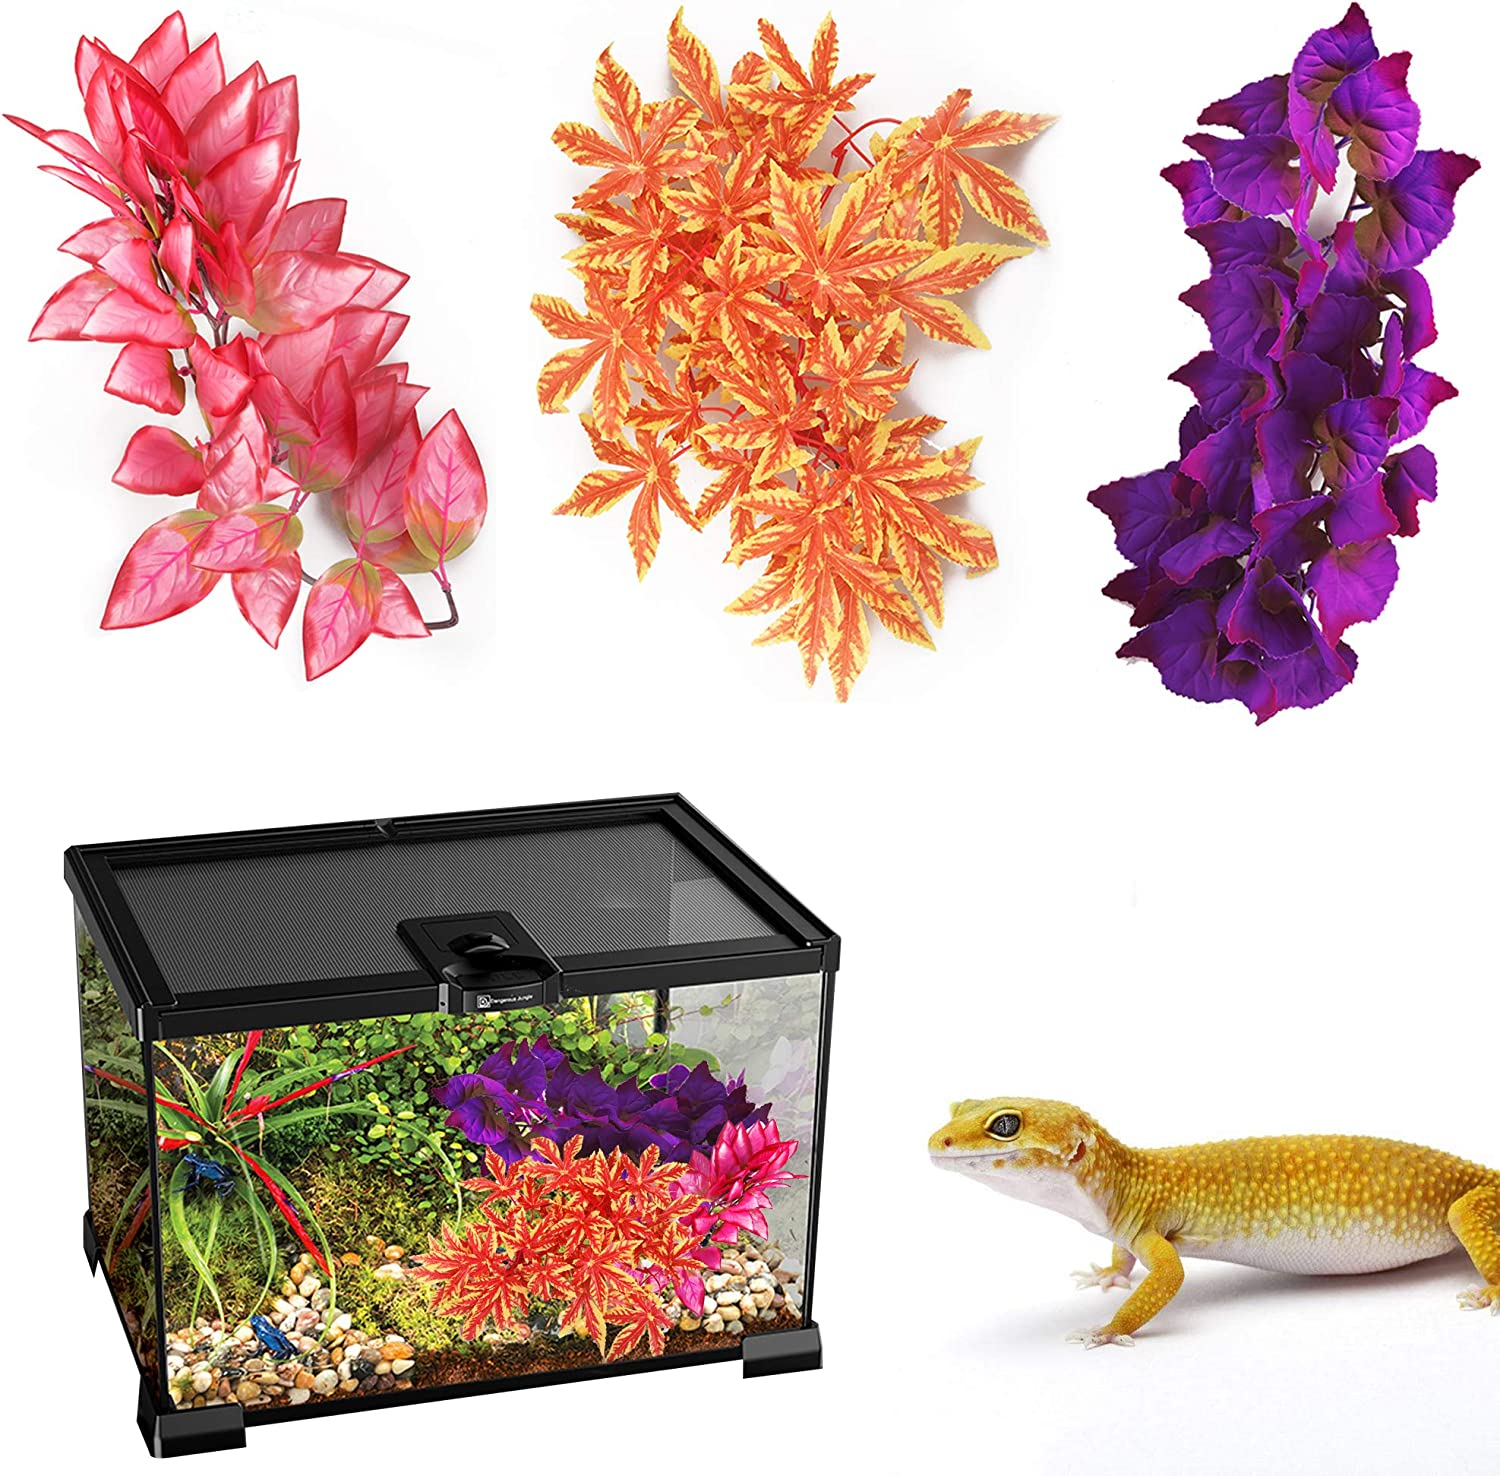 HOCTRAKA Reptile Plants, 3 Pack 12 inch Hanging Silk Terrarium Plants with Suction Cup for Bearded Dragons Lizards Gecko Snake Turtle Pets Tank Habitat Decorations for Reptile Terrariums Pet Supply